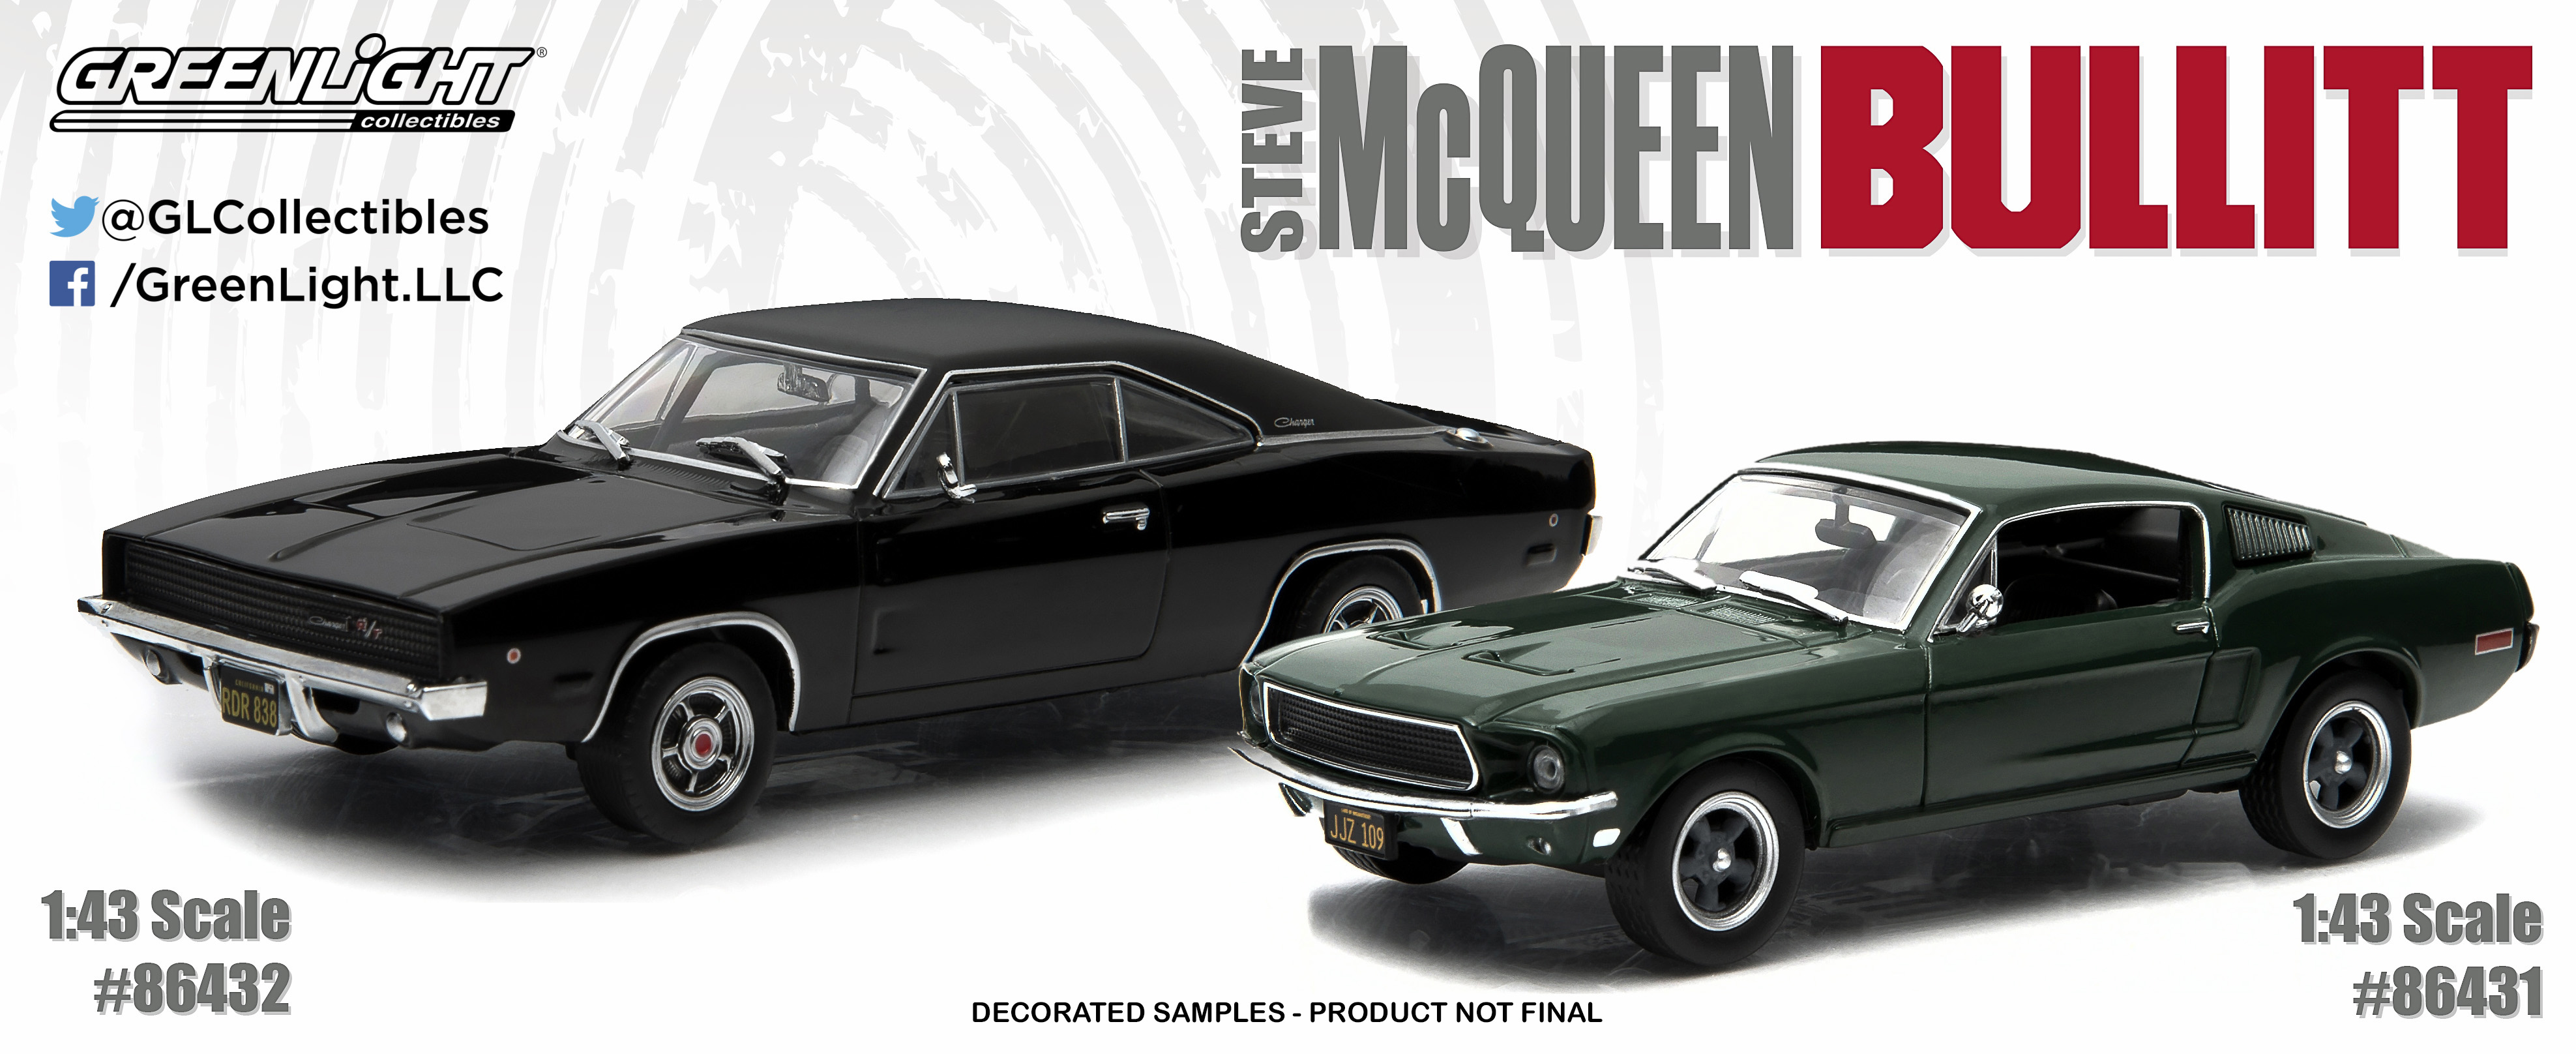 High-Caliber Bullitts: GreenLight's 1:43 Mustang and Charger